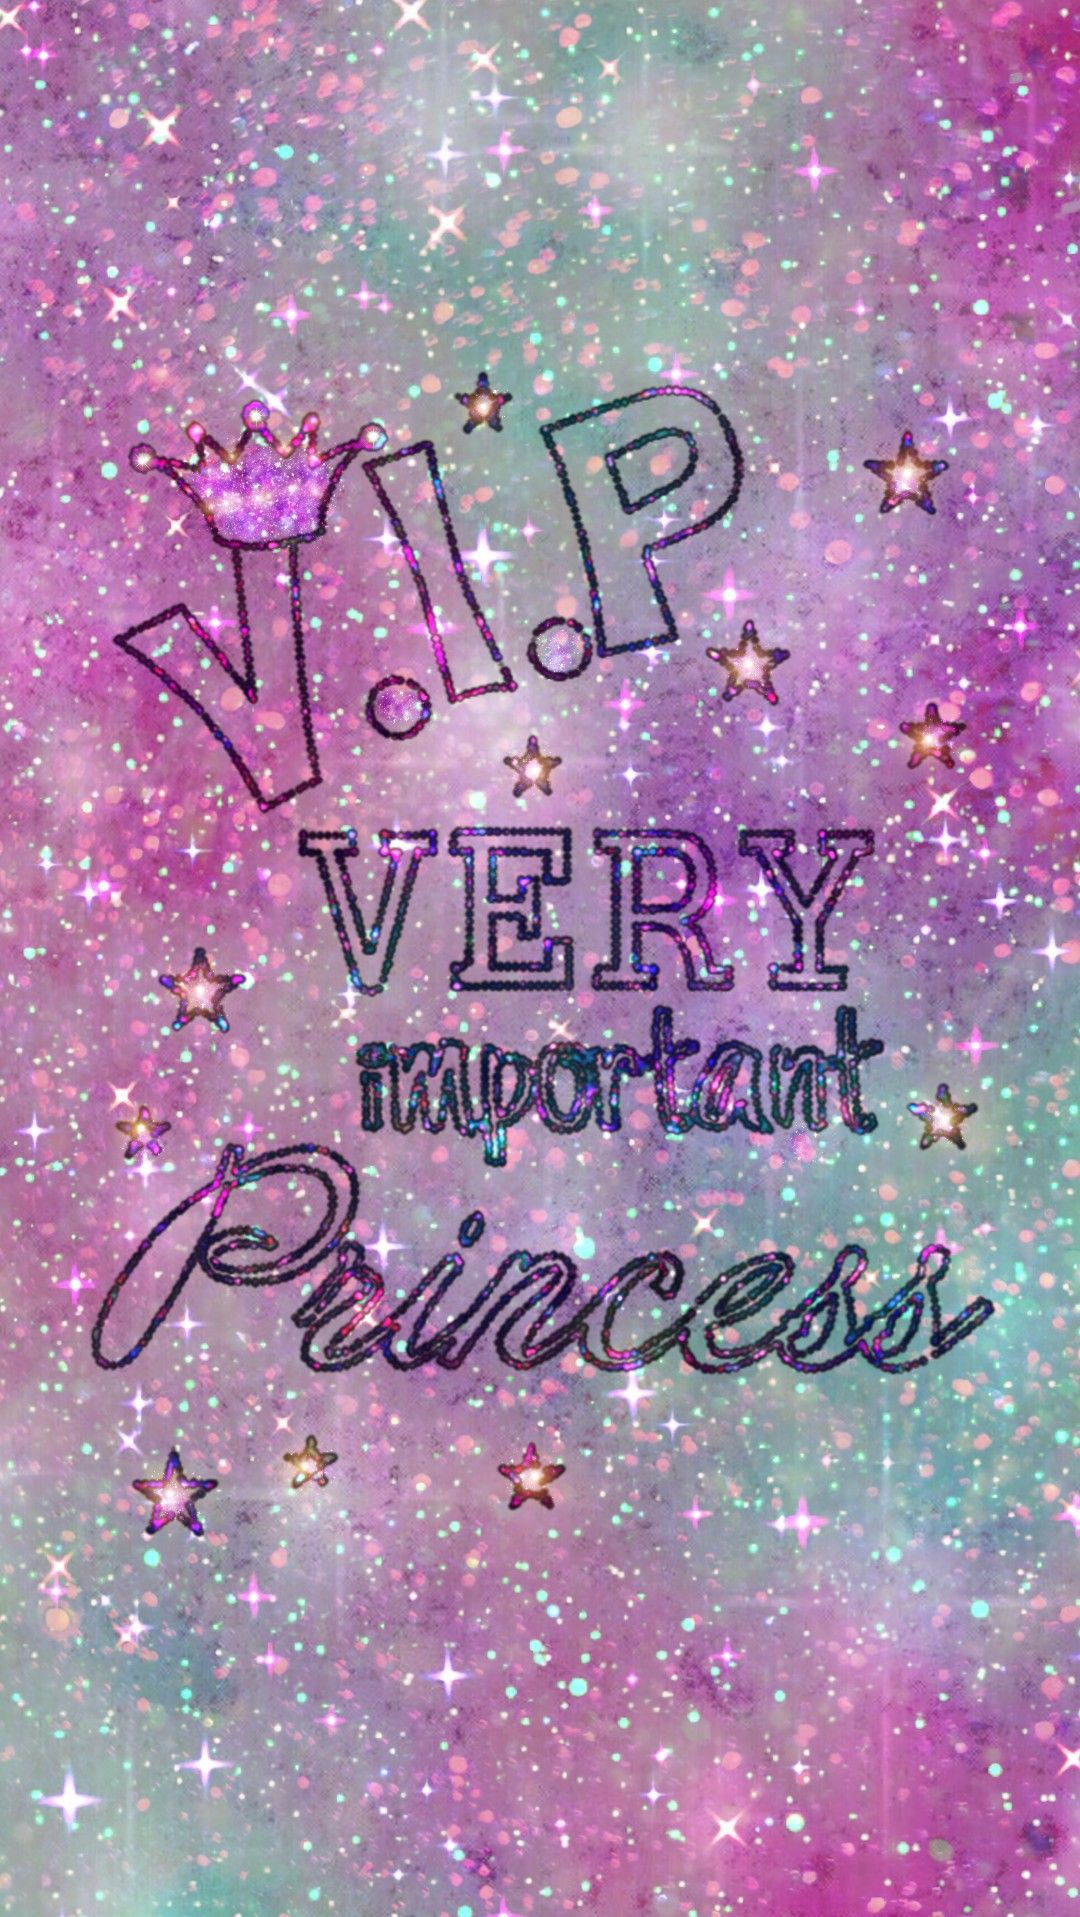 V I P Galaxy Made By Me Purple Sparkly Wallpapers Backgrounds Sparkles Glittery Pink Wallpaper Girly Iphone Background Glitter Pink Wallpaper Android